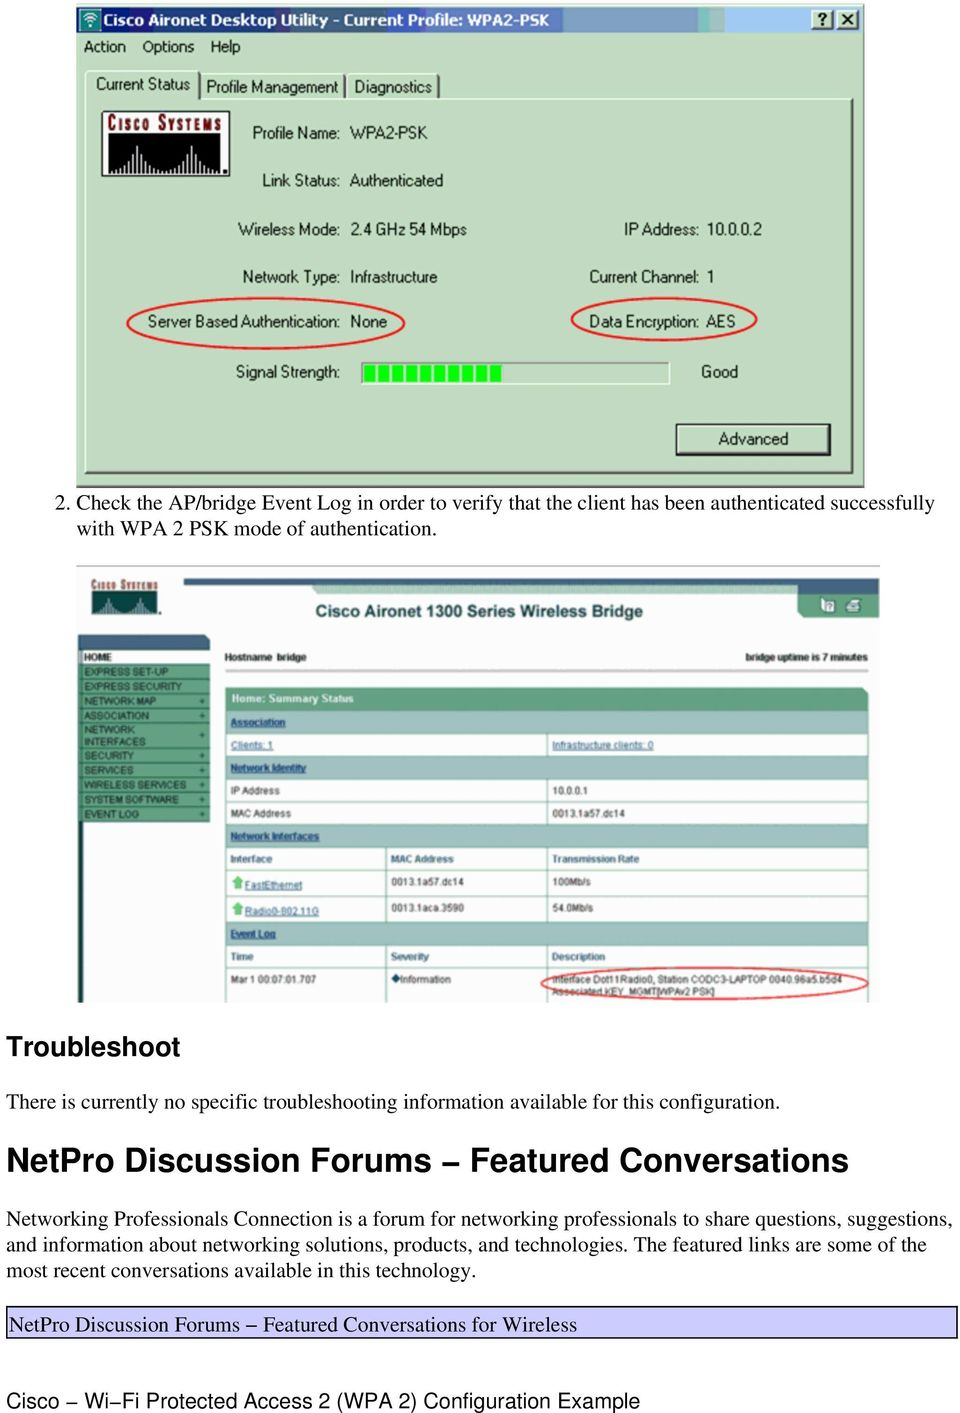 NetPro Discussion Forums Featured Conversations Networking Professionals Connection is a forum for networking professionals to share questions, suggestions,